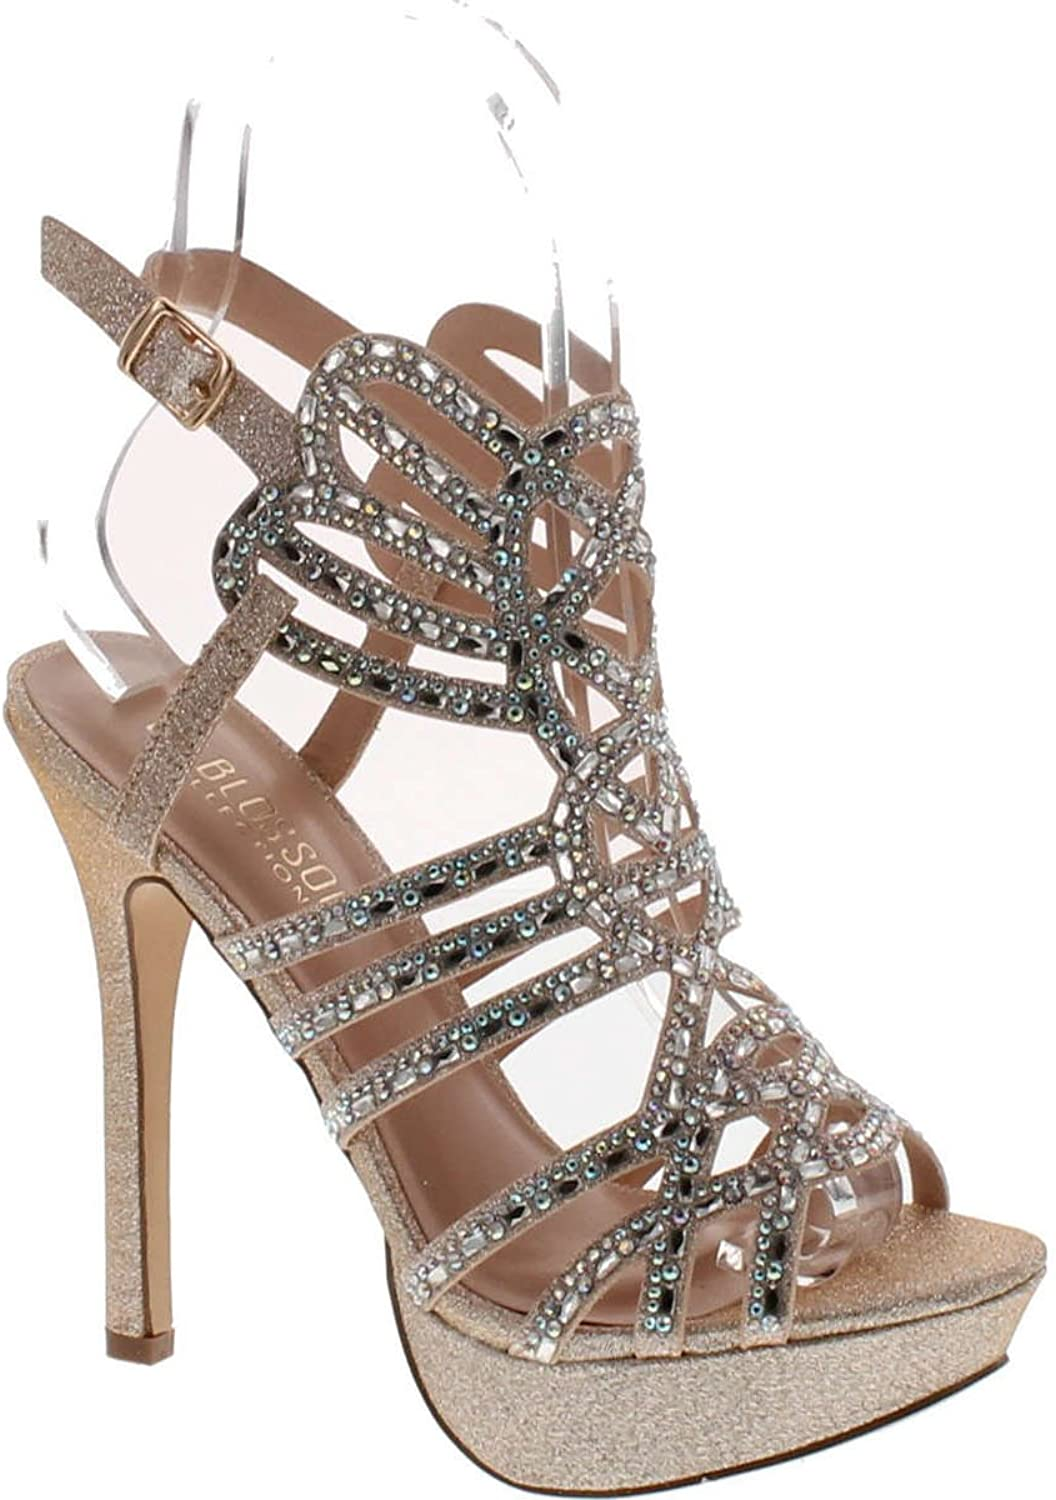 De Blossom Gap-28 Bridal Formal Evening Party Ankle Strap High Heel Peep Toe Glitter Sandal